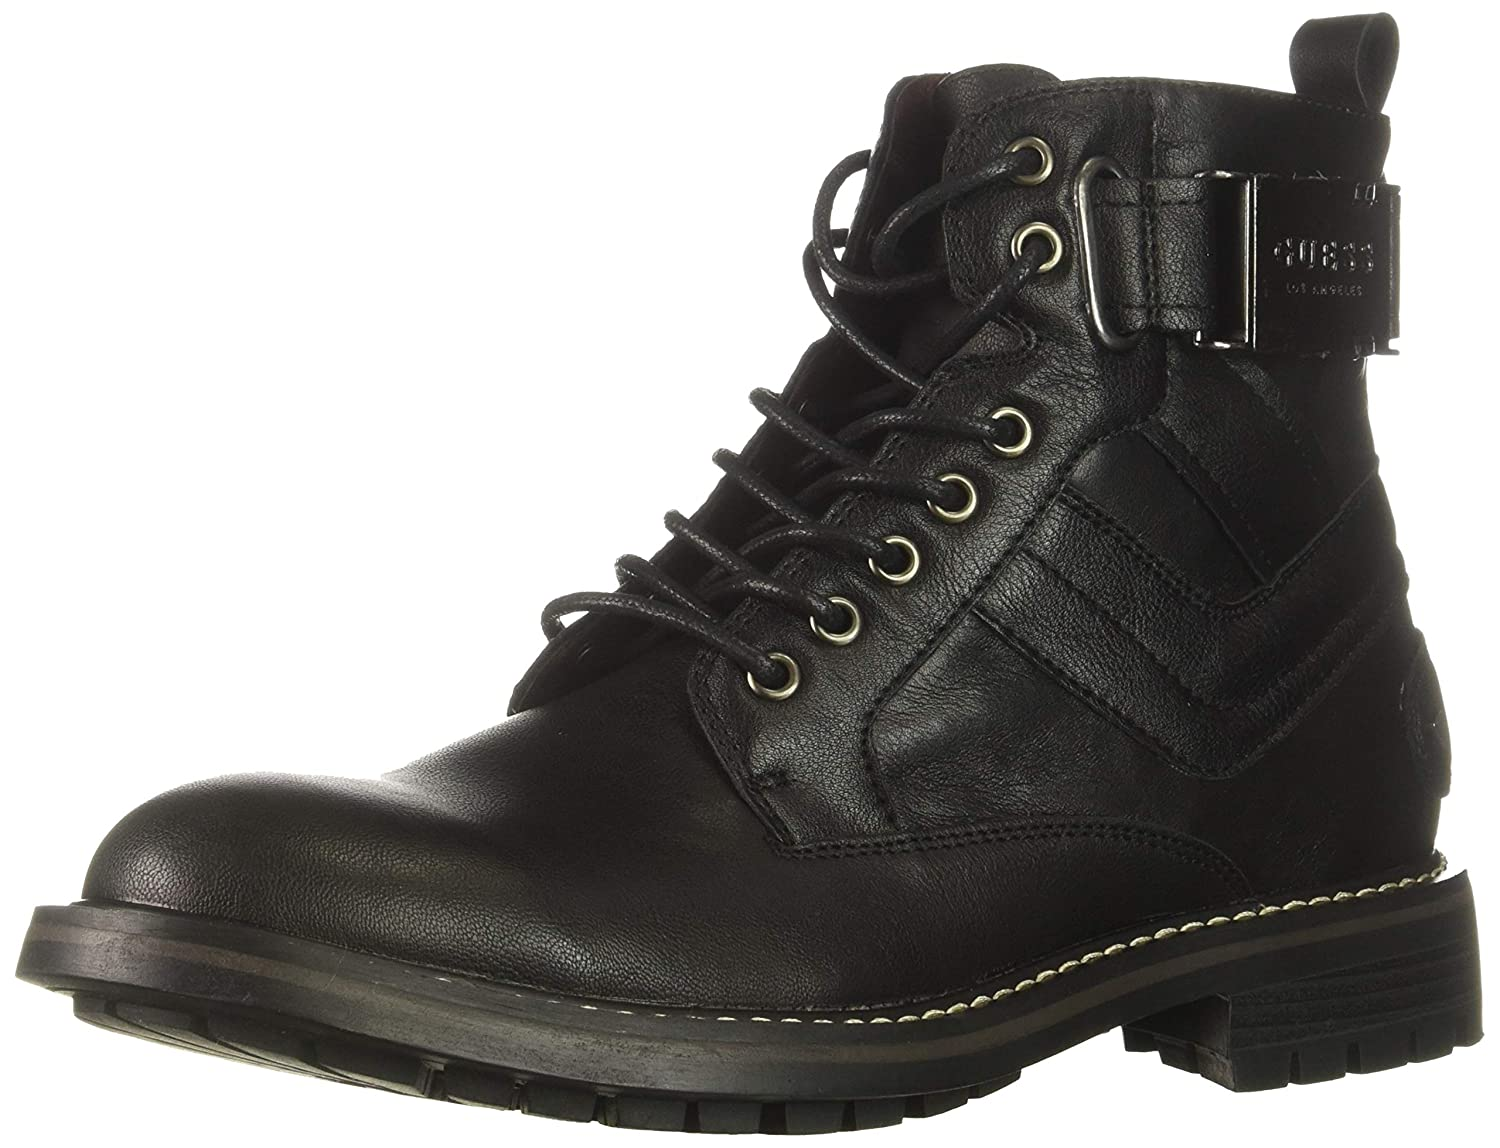 Guess Men's Rebel Combat Boot GMREBEL